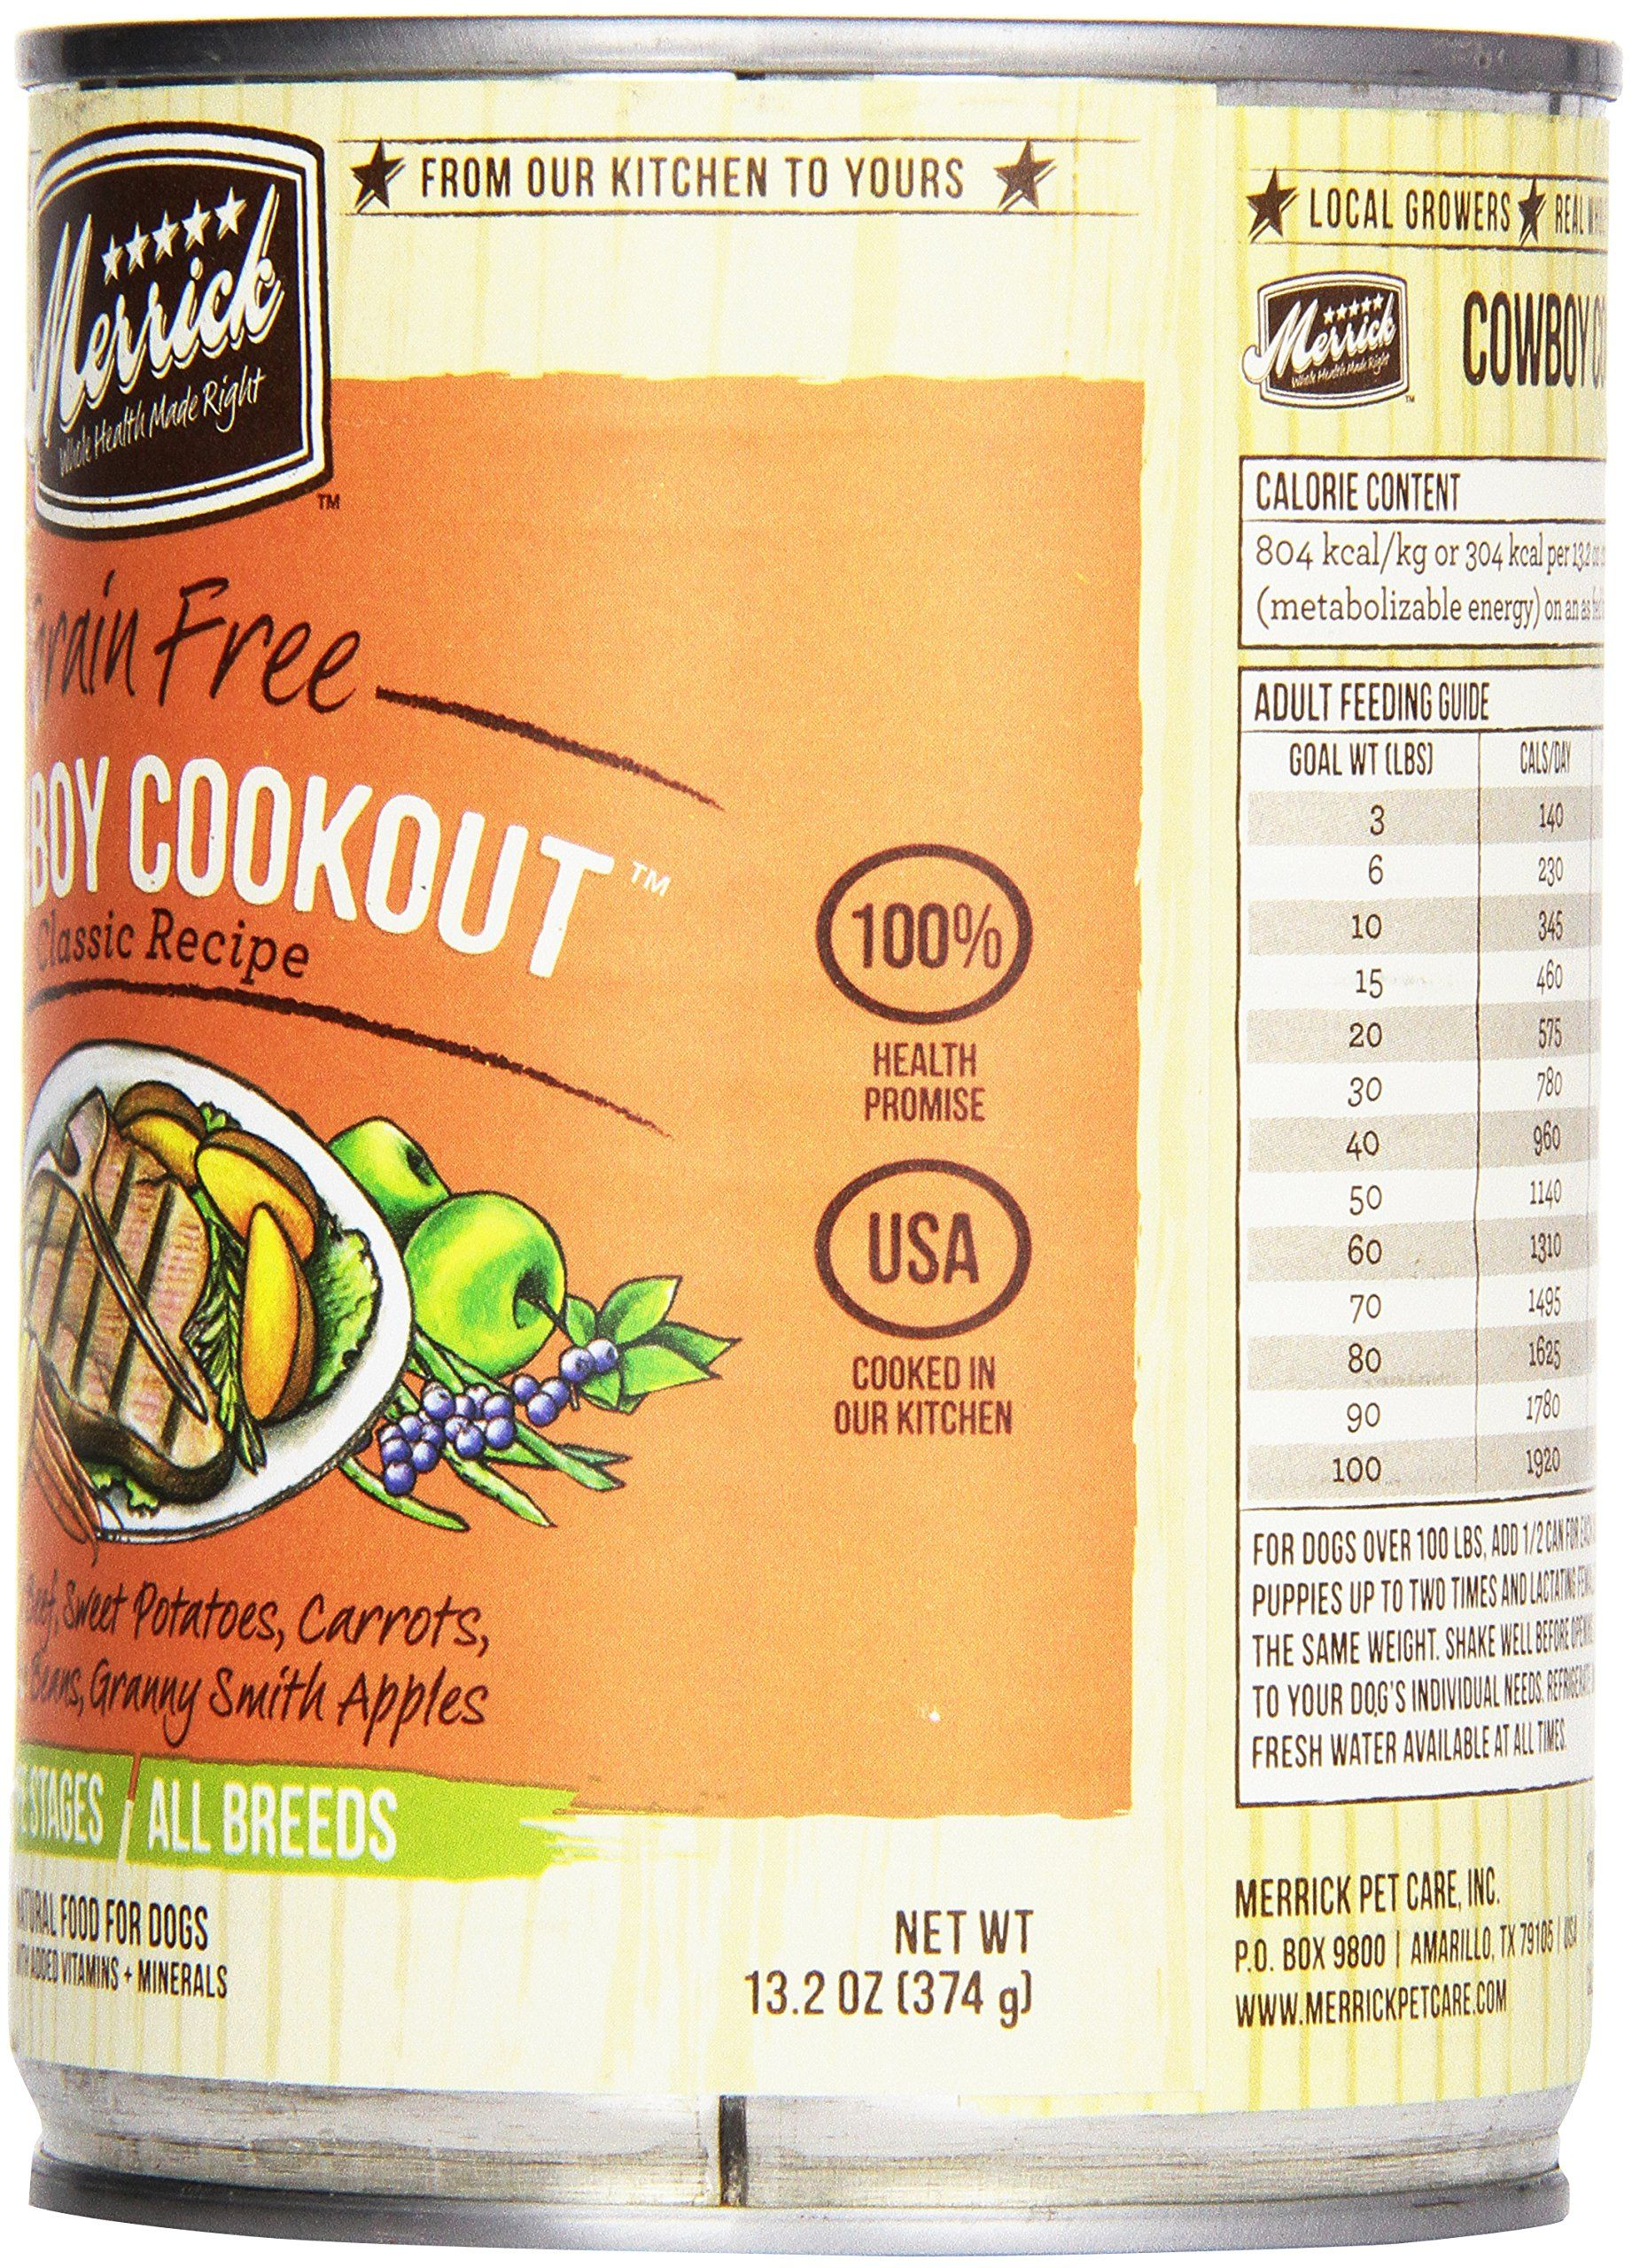 Merrick canned dog food 5star cowboy cookout 132 oz